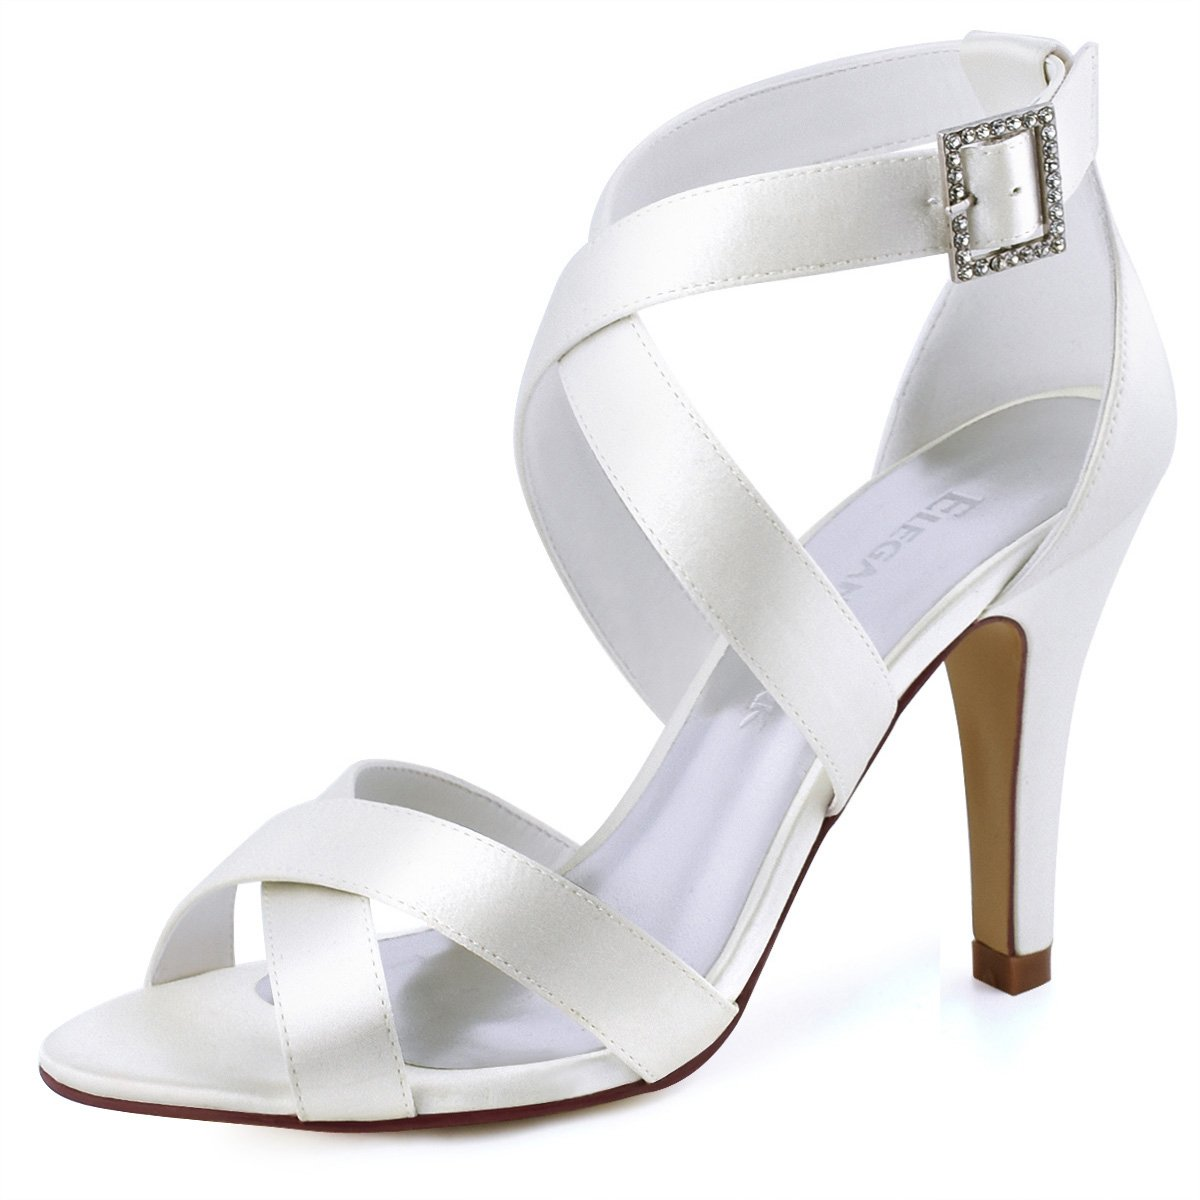 ElegantPark HP1705 Women High Heel Shoes Open Toe Cross Strap Satin Bridal Wedding Sandals Ivory US 7